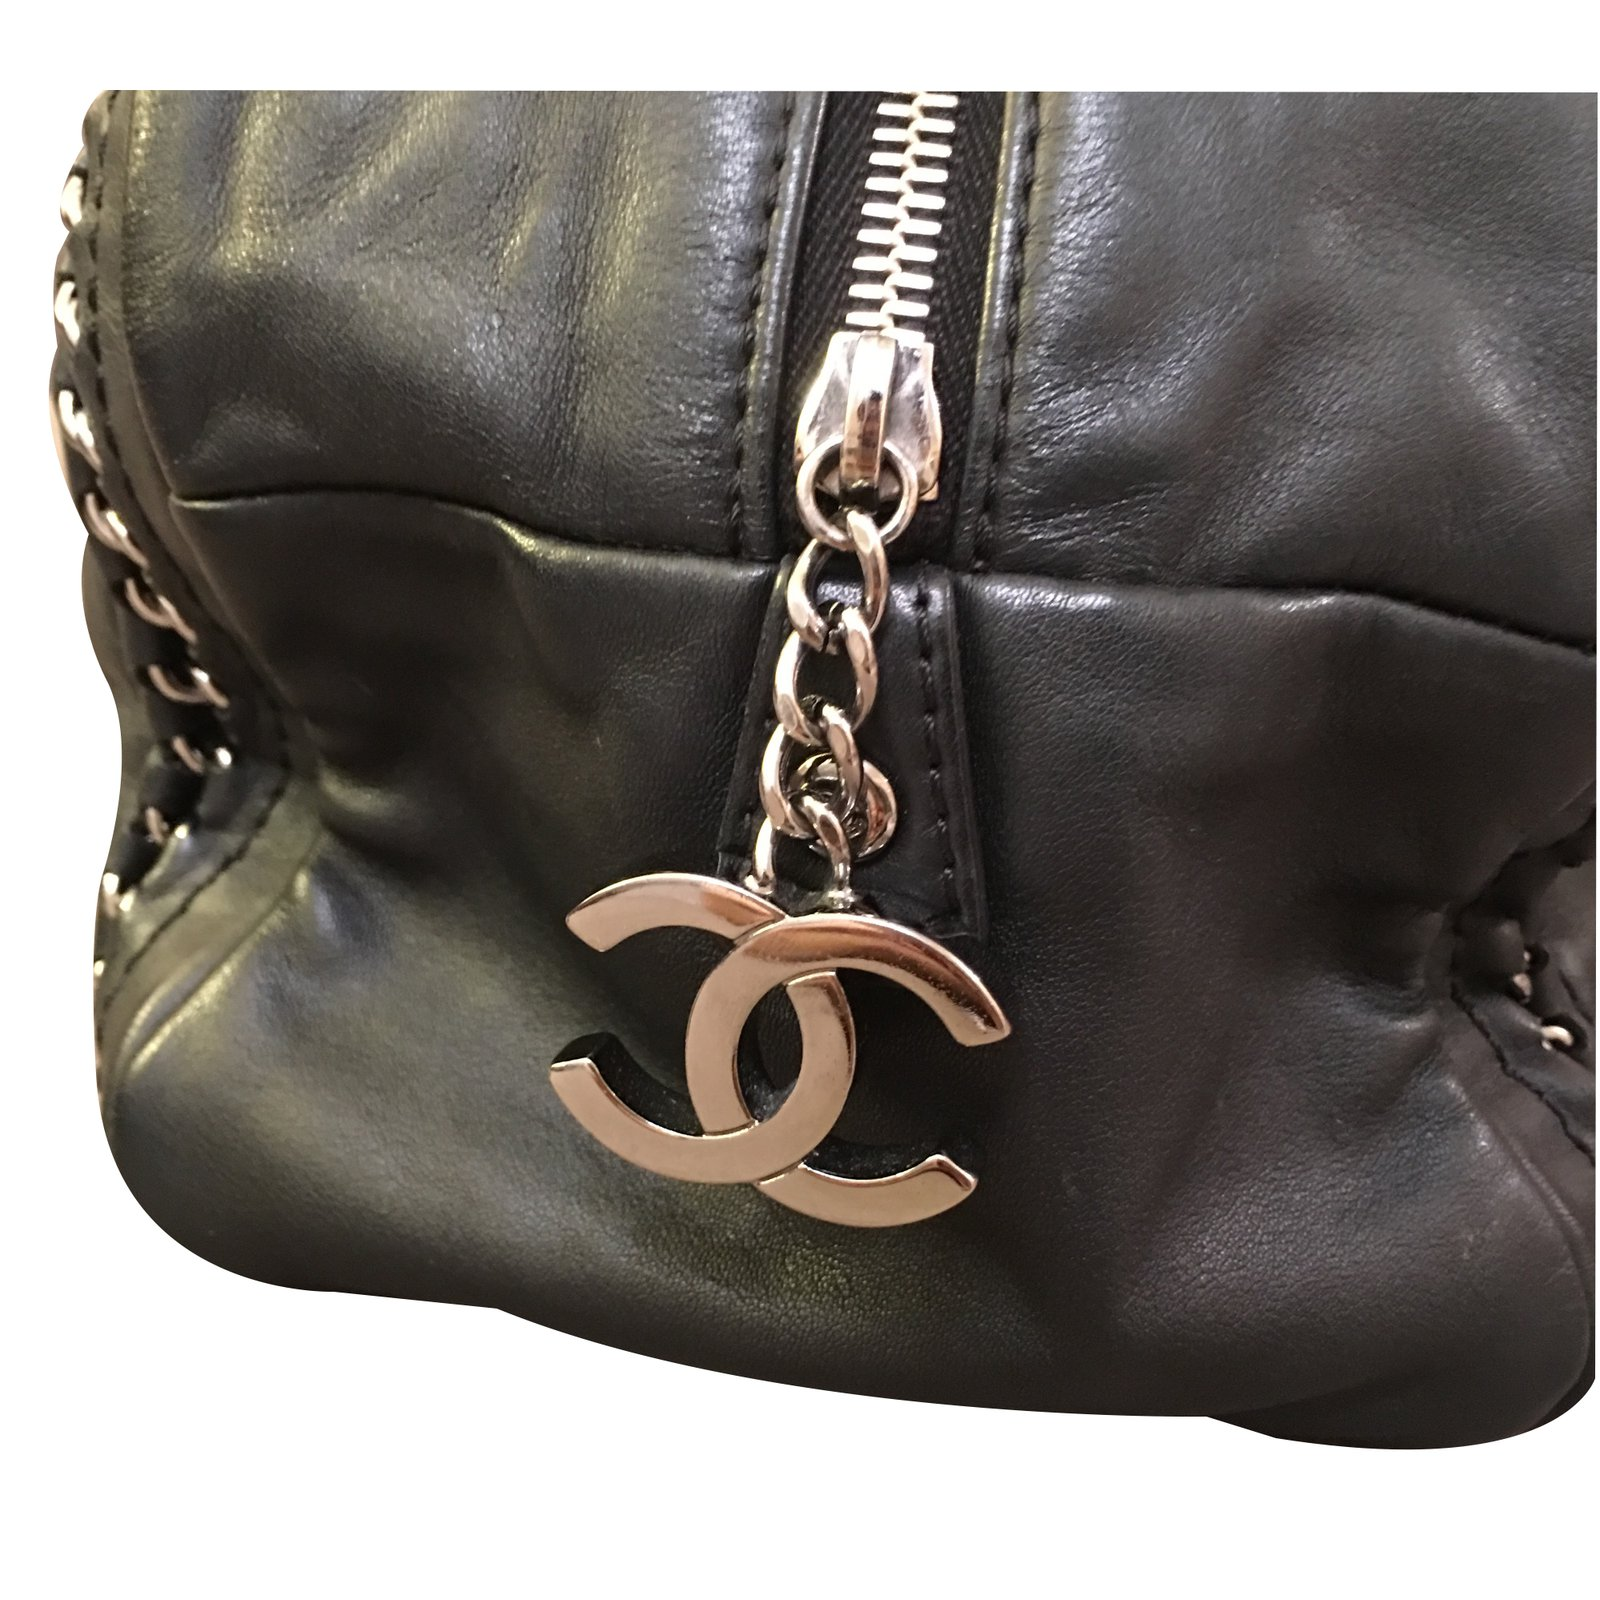 08d64bd95242c0 Chanel Chanel Luxury Ligne Bowler Black Lambskin with Silver Chains Handbags  Leather Black ref.17261 - Joli Closet